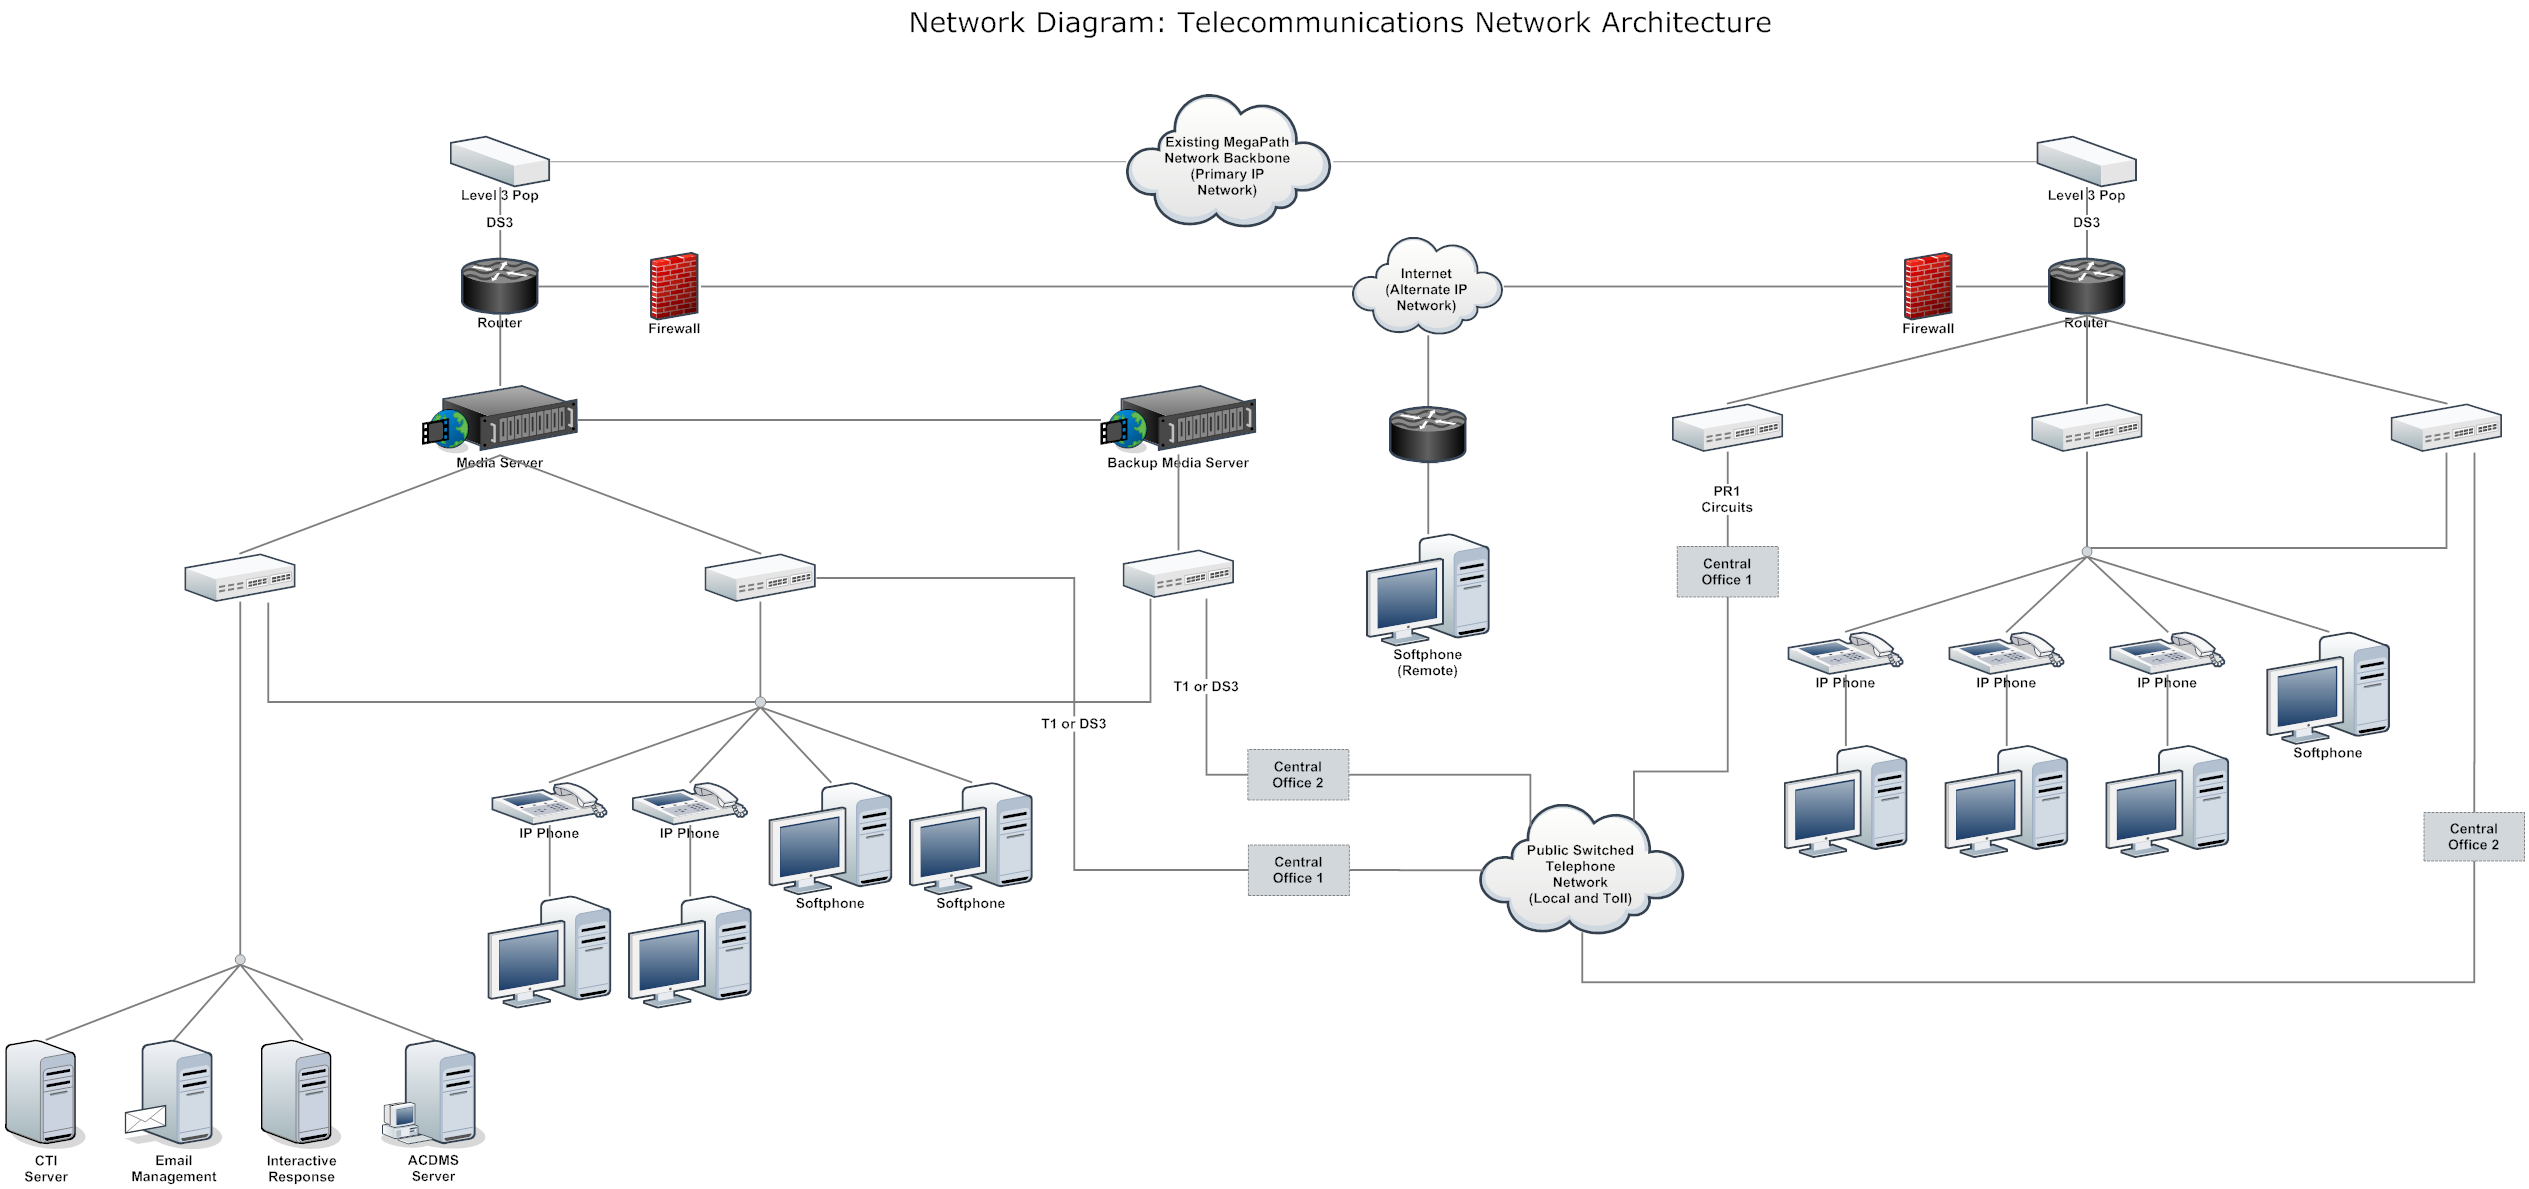 network diagram example telecommunnications network architecture [ 2529 x 1189 Pixel ]